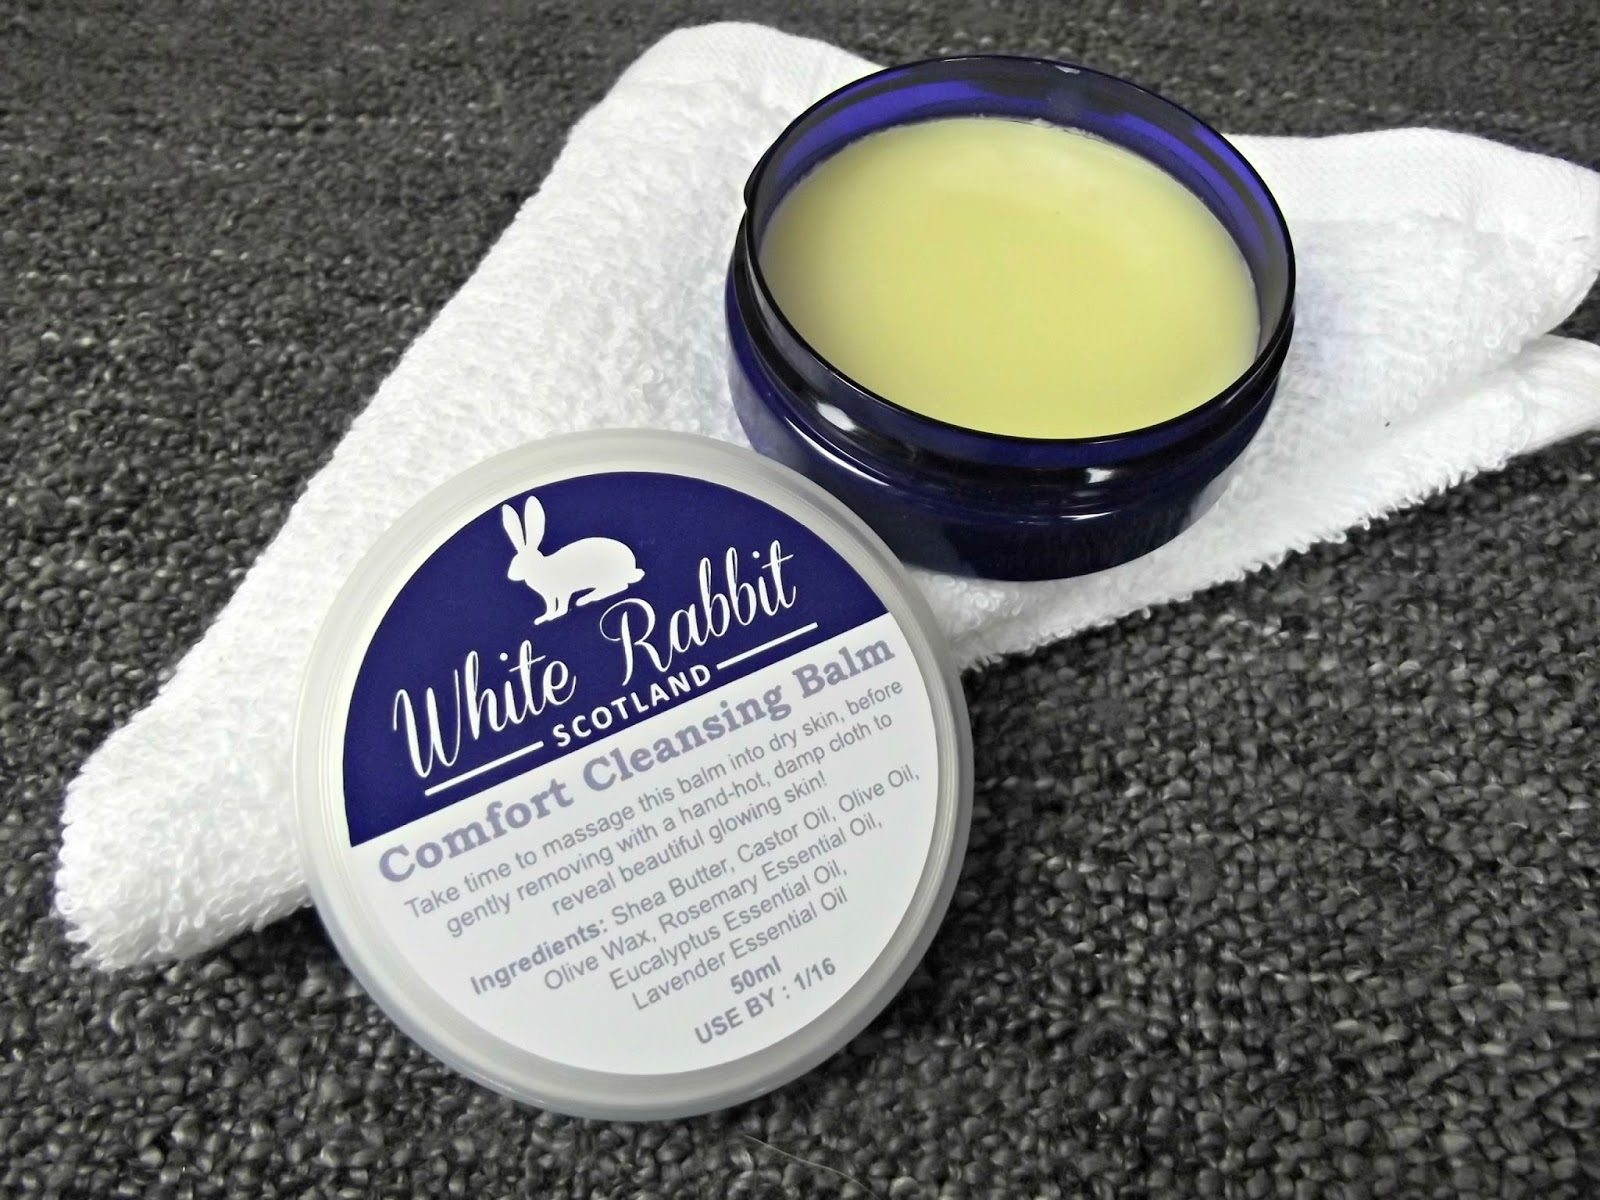 White Rabbit Skincare Comfort Cleansing Balm